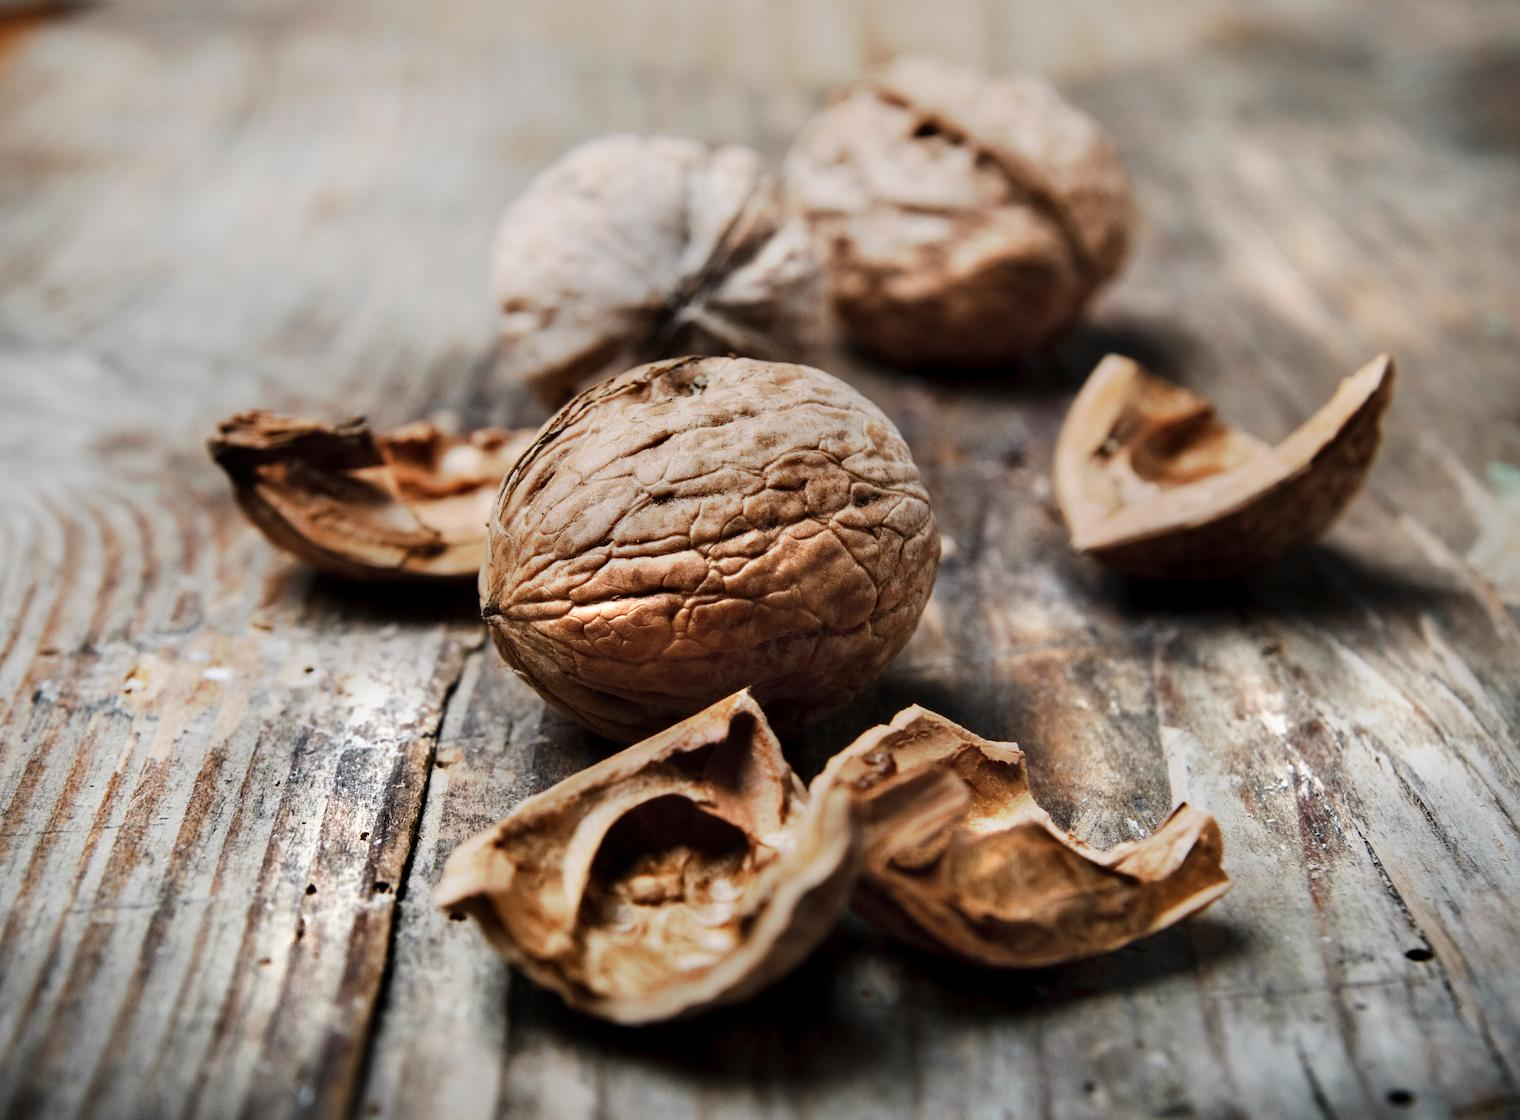 Some shelled walnuts on a wood table